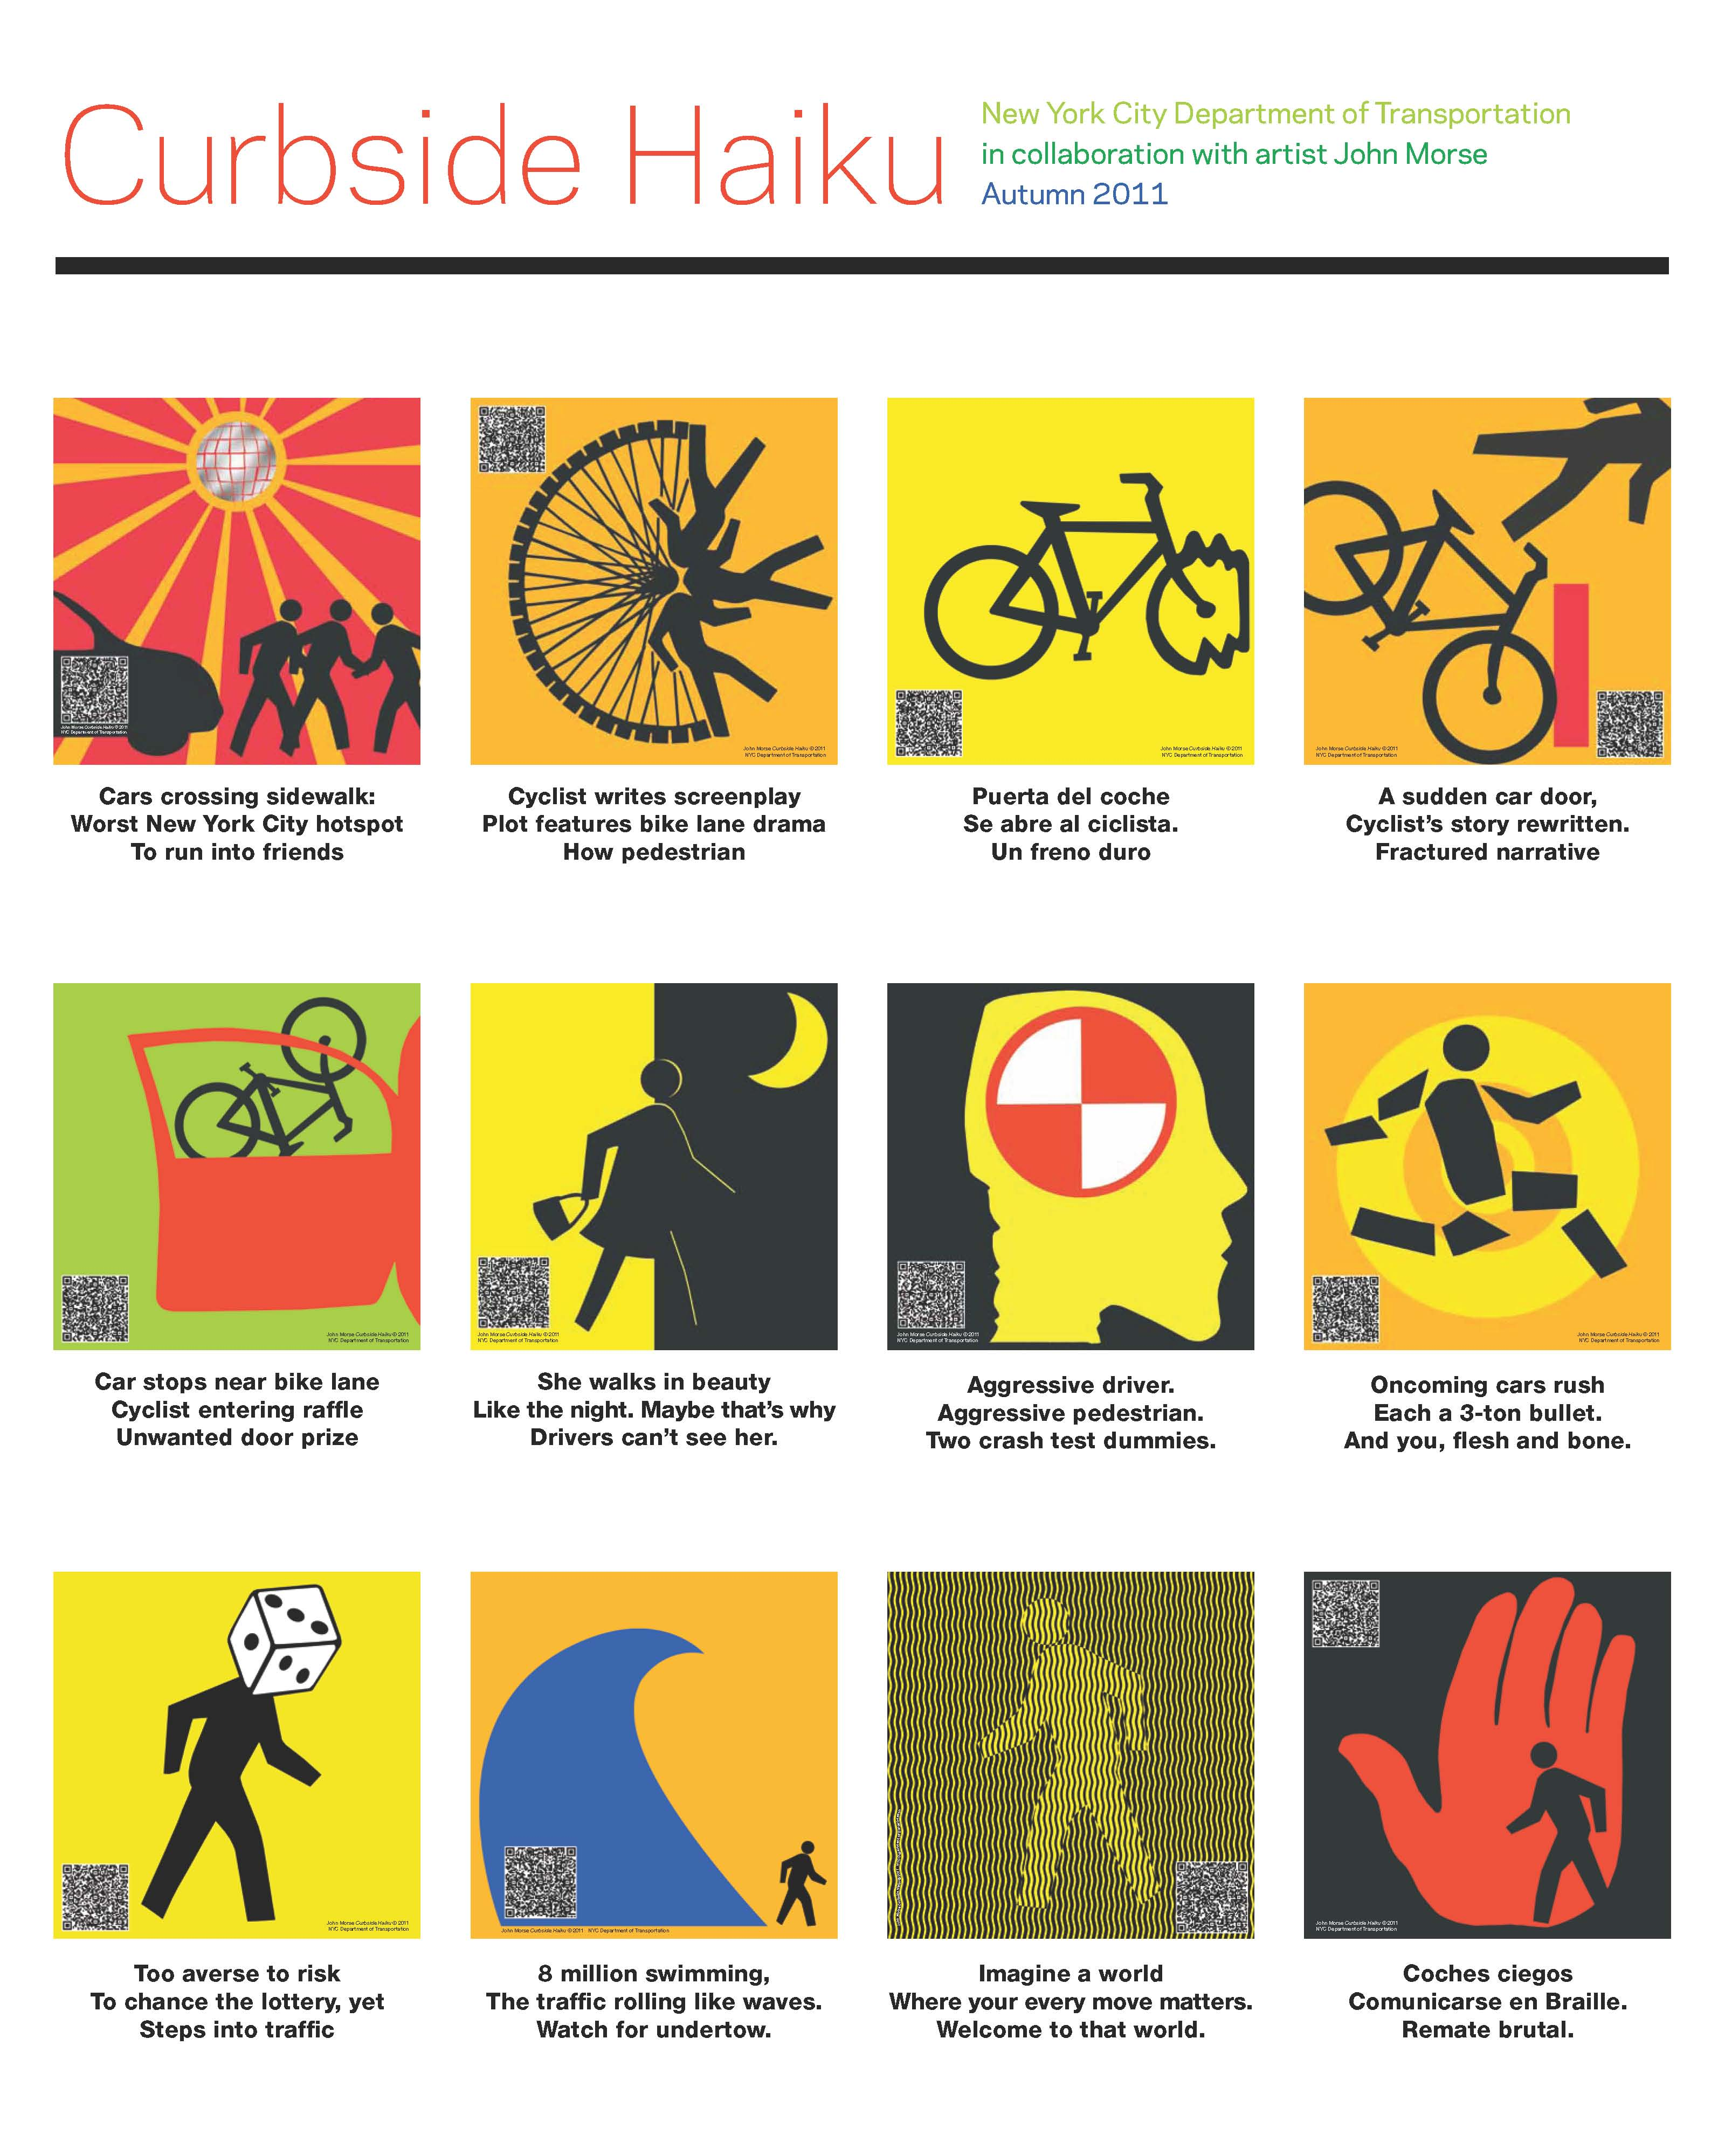 Best Ideas About New York Subway On Pinterest NYC Subway - Nyc map bike lanes